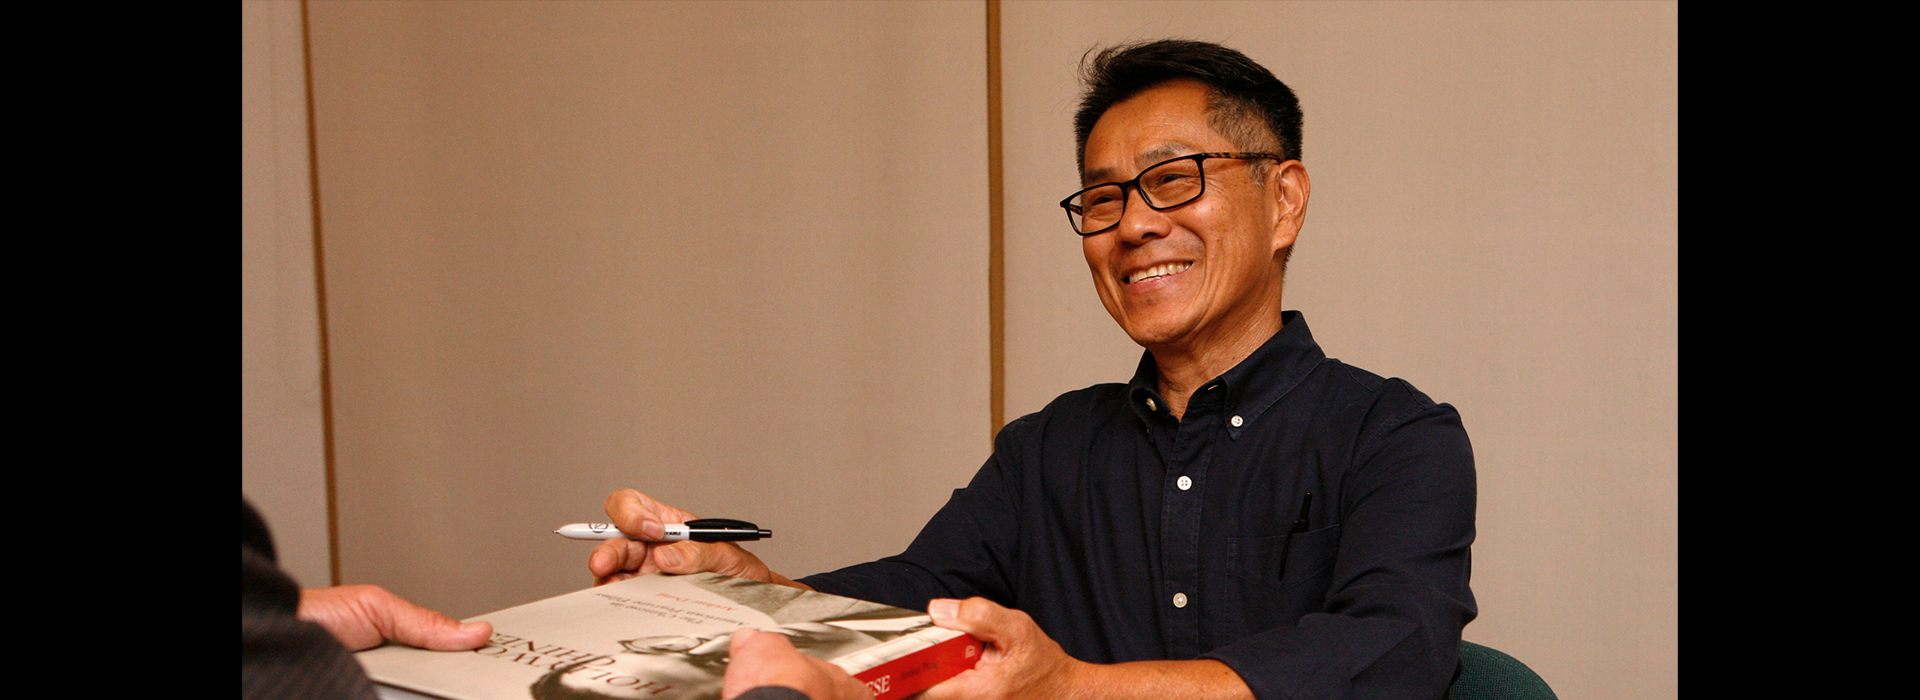 Academy Award-nominated filmmaker and author Arthur Dong to speak at CSUSB on Feb. 19